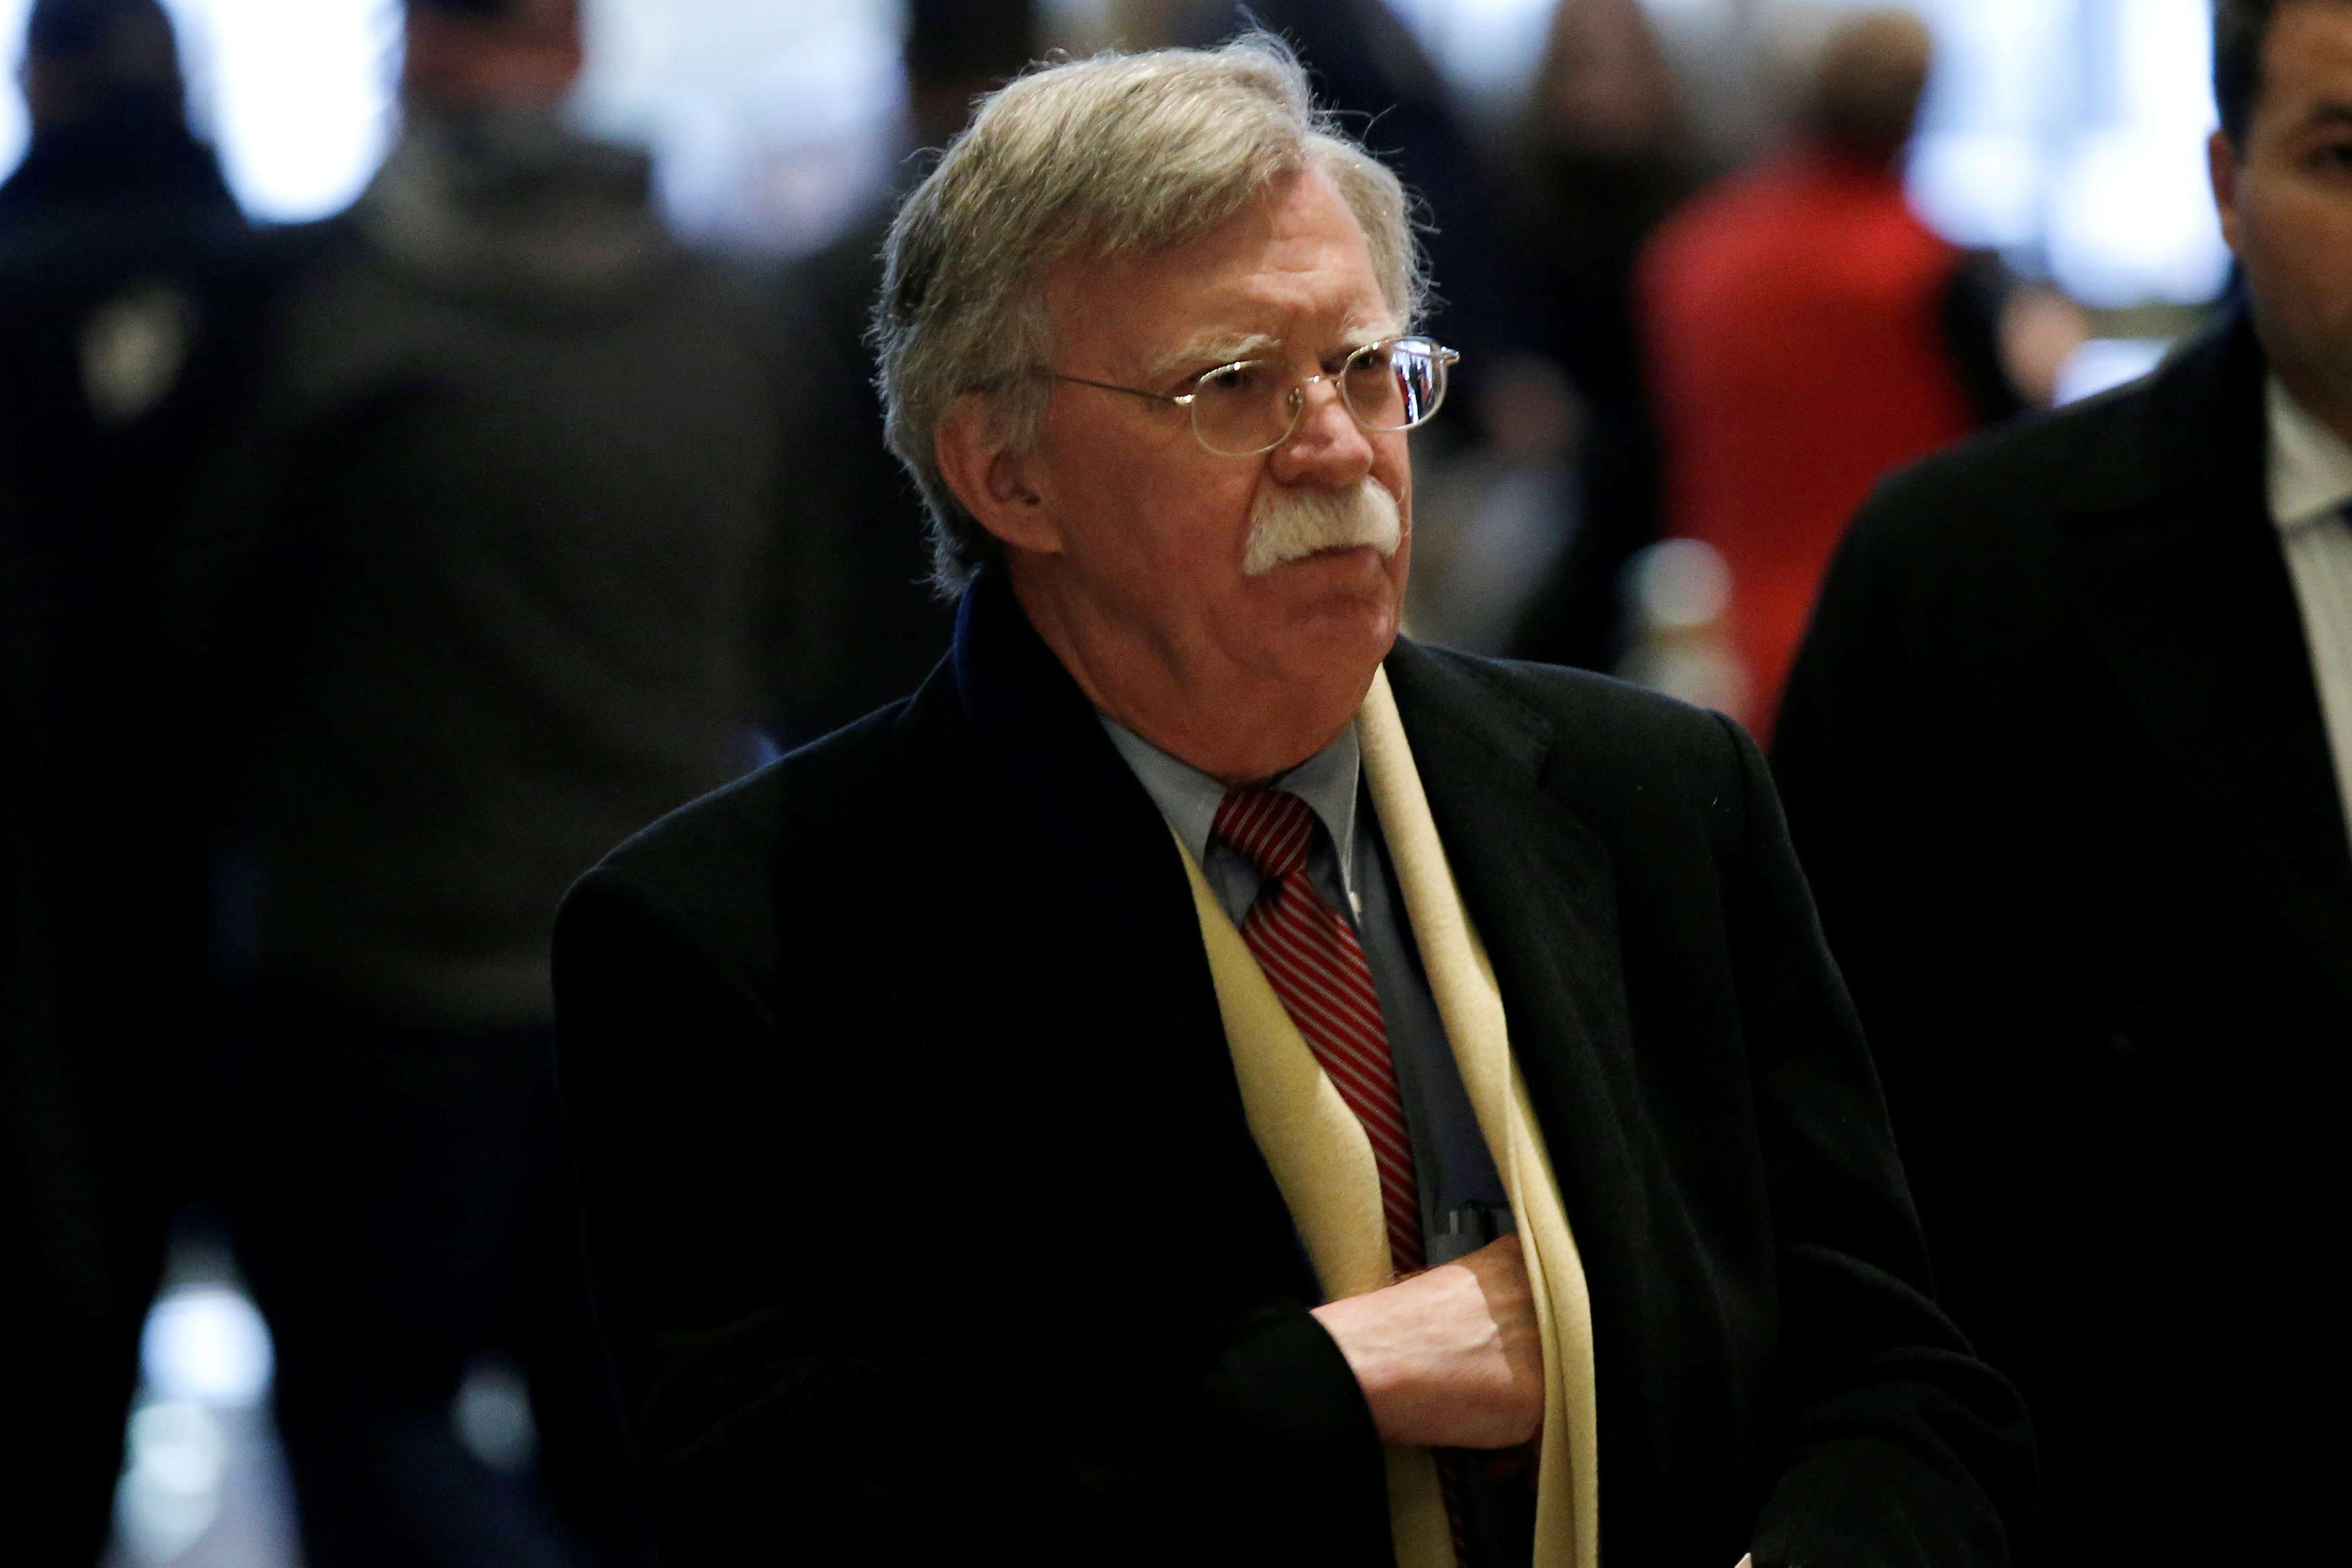 A 2016 file picture shows former US Ambassador to the United Nations John Bolton arriving for a meeting with US President Donald Trump in New York. (Reuters)